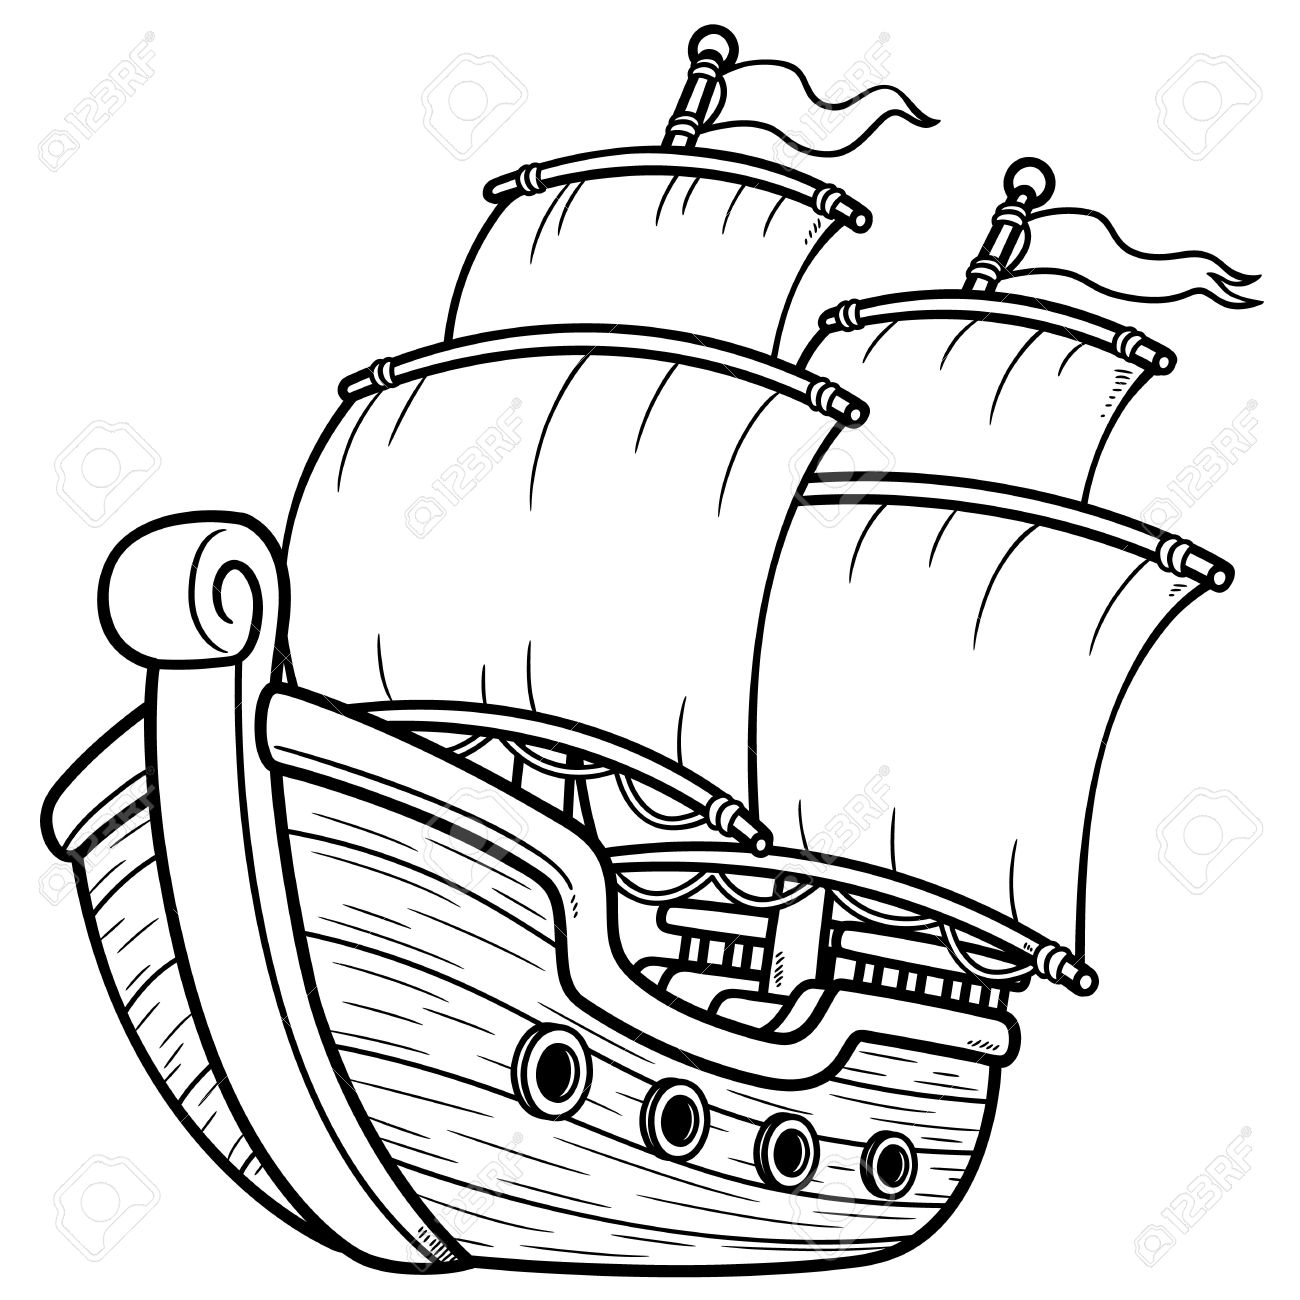 Vector Illustration Of Pirate Ship - Coloring Book Royalty Free ...